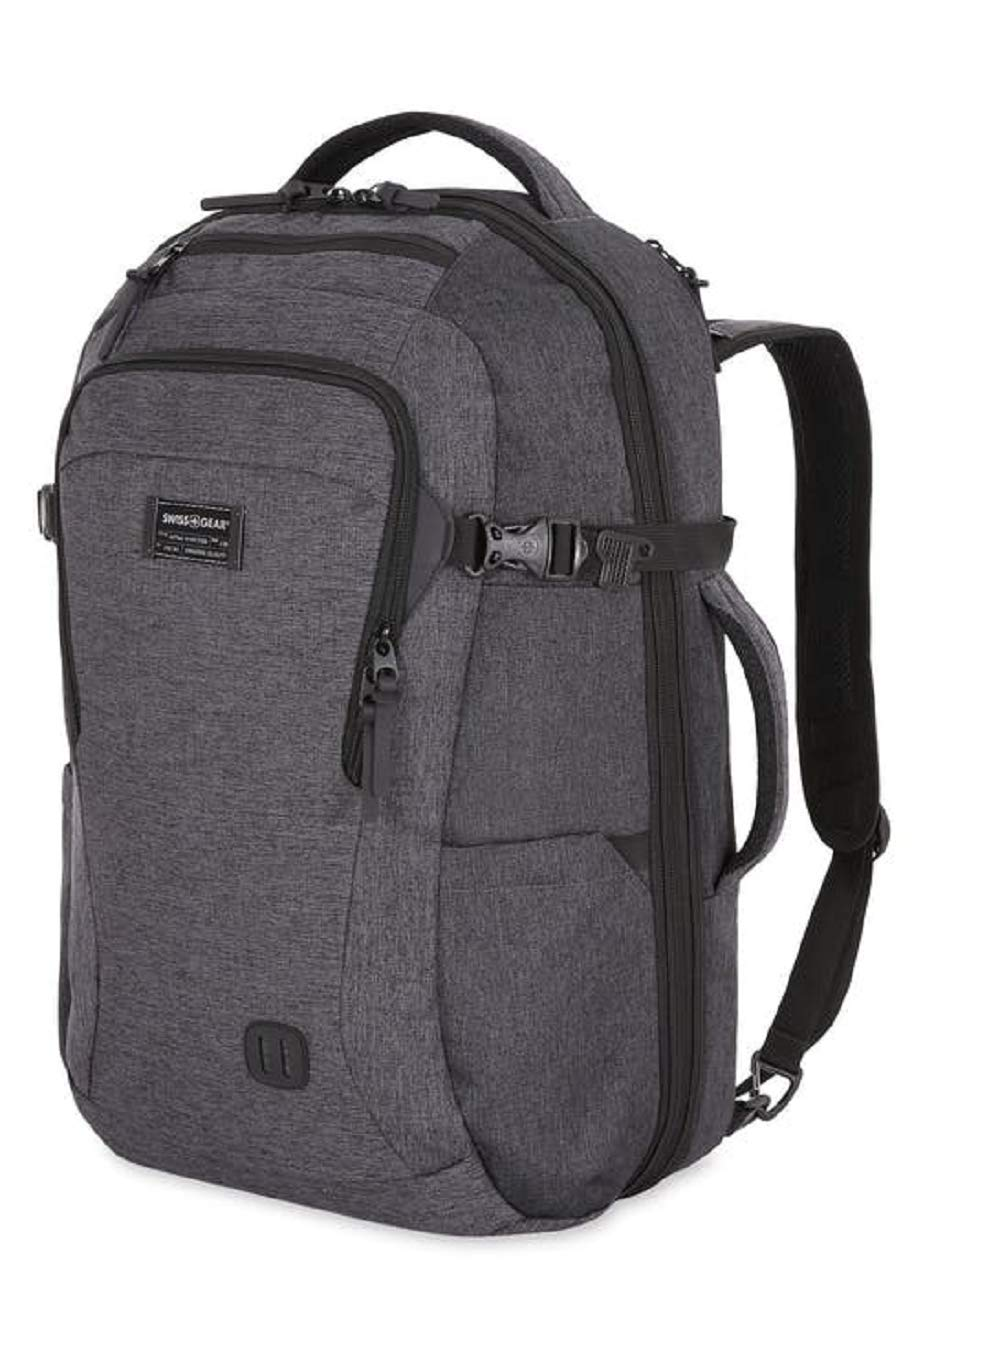 SWISSGEAR 6067 Getaway 2.0 Big Expandable Men's and Women's Ultra Spacious Laptop Backpack - Heather by Swiss Gear